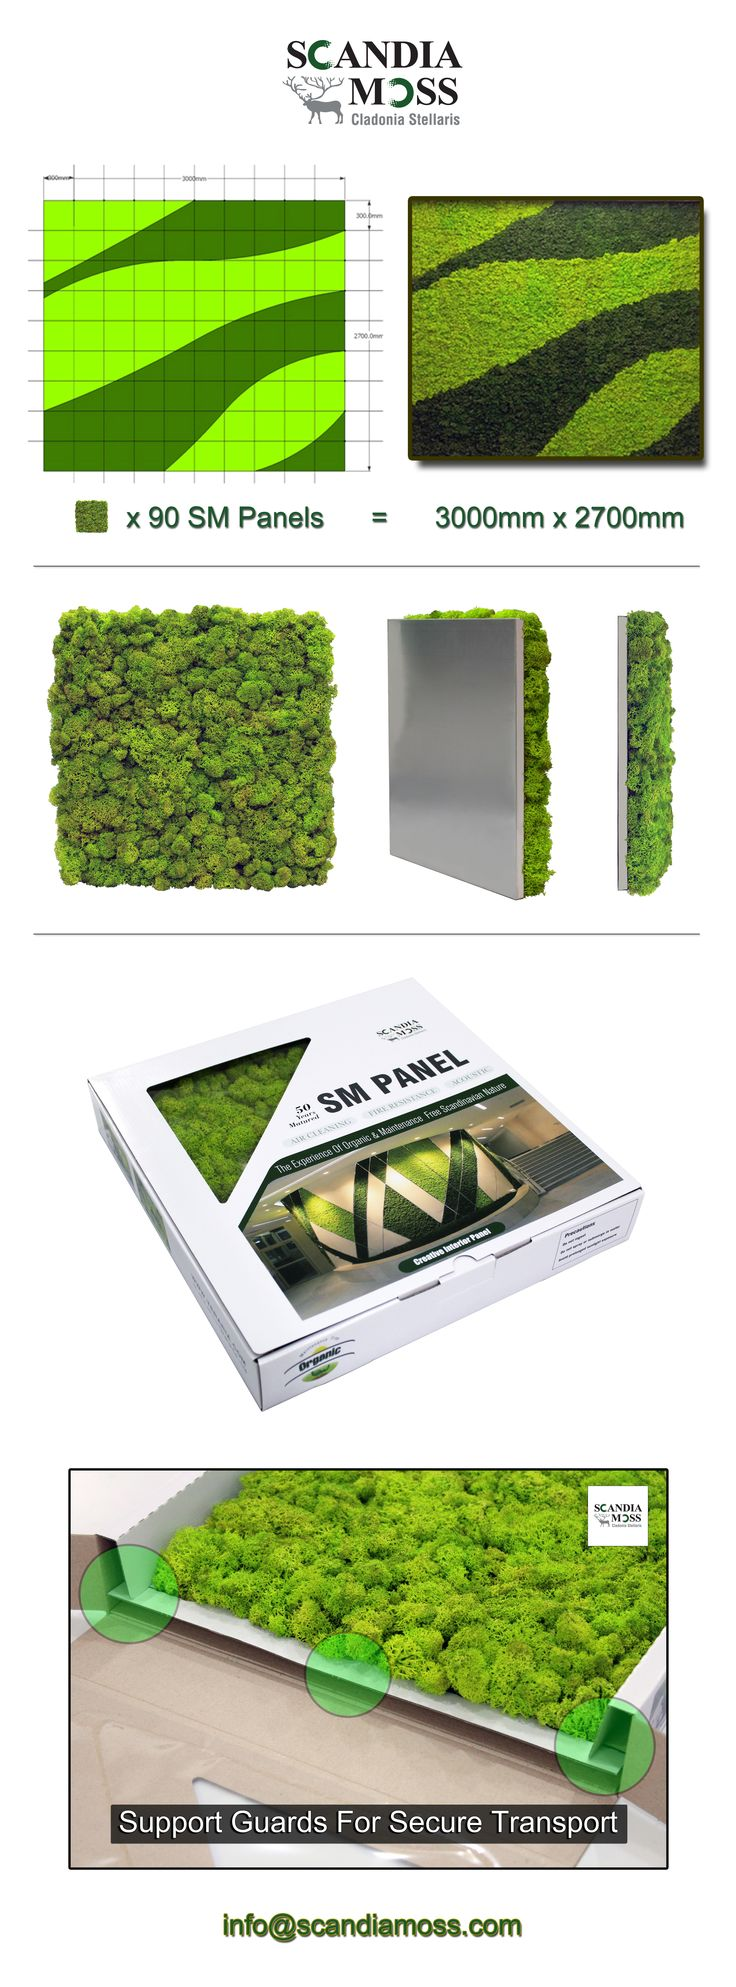 Want to go big with your moss?  How about your own custom design?  Customized designs are easy with the Scandia Moss SM Panel.